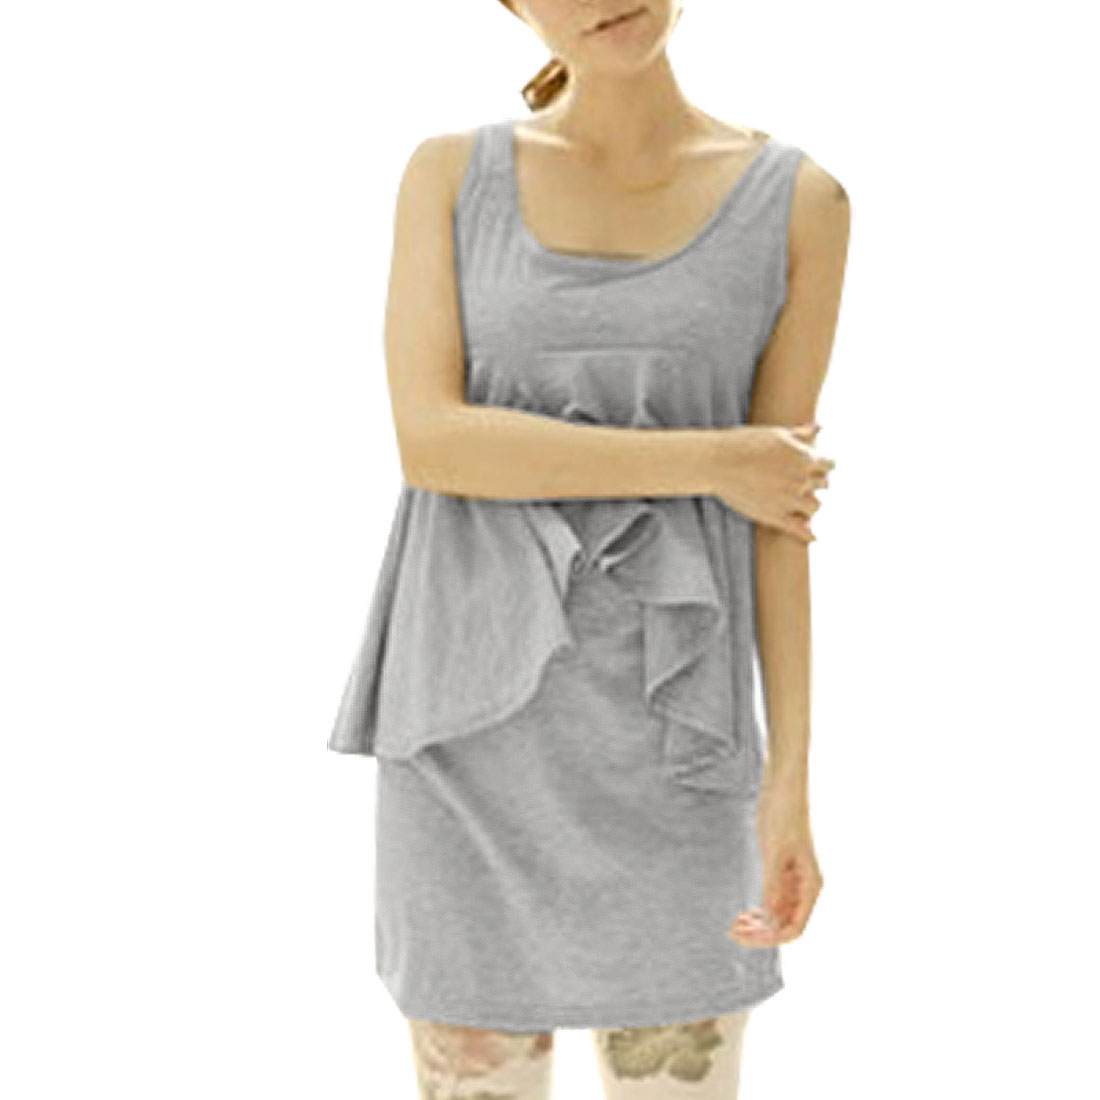 Gray Round Neck Spliced Ruffle Design Sleeveless Tunic Top for Lady S